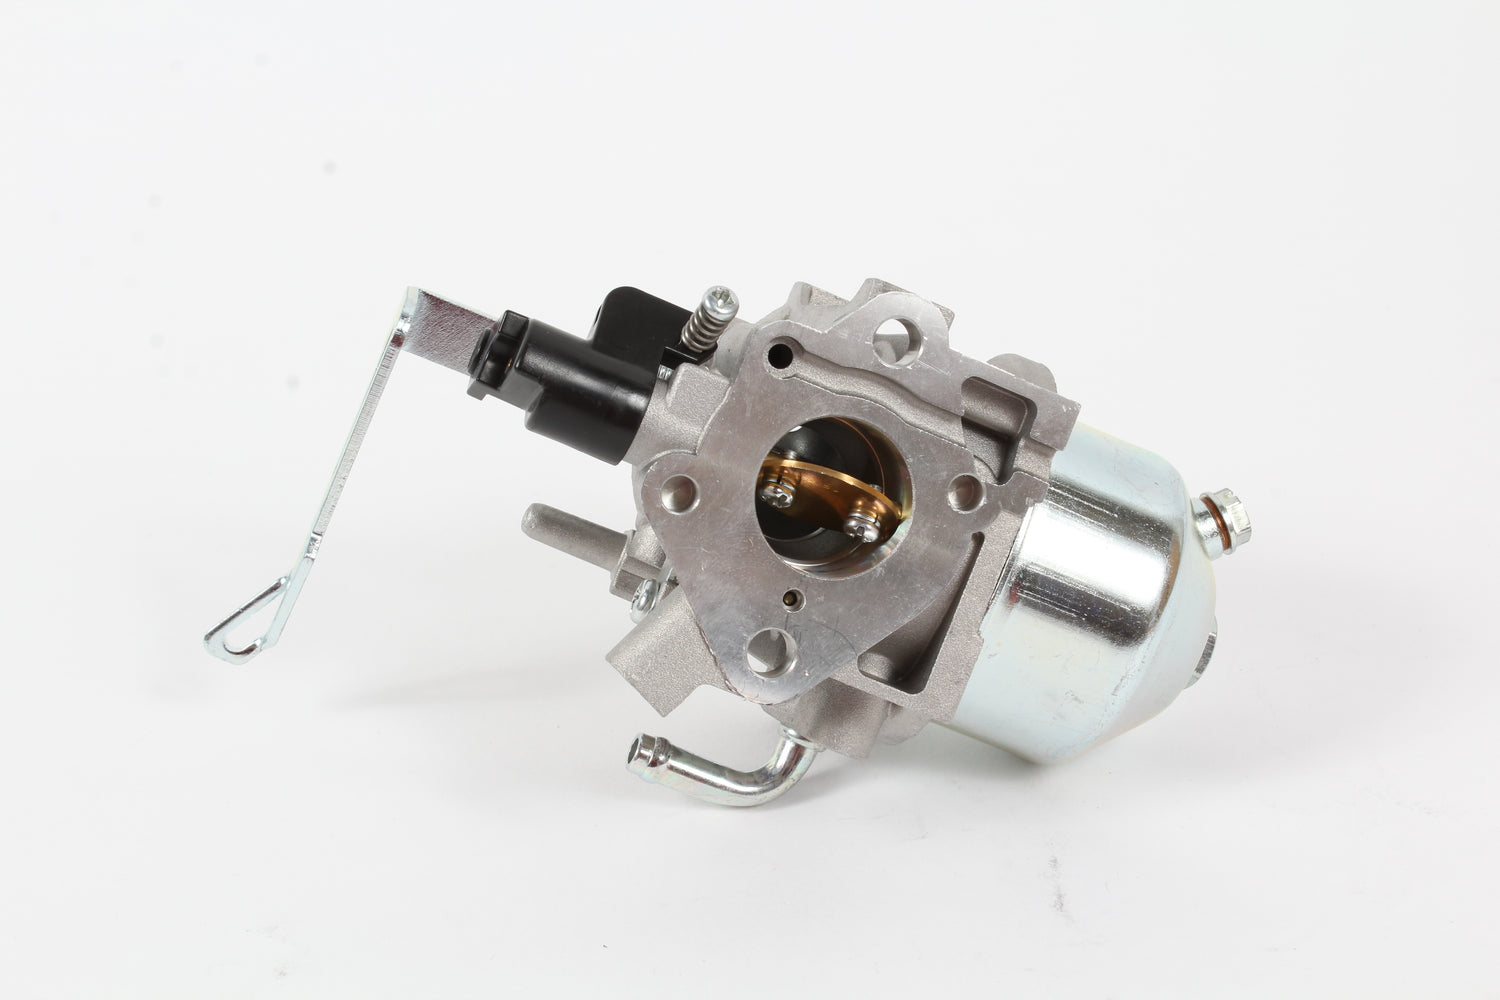 Genuine Robin 22E-62364-00 Carburetor Fits Some EX21 EX27 EX30 Formerly Subaru